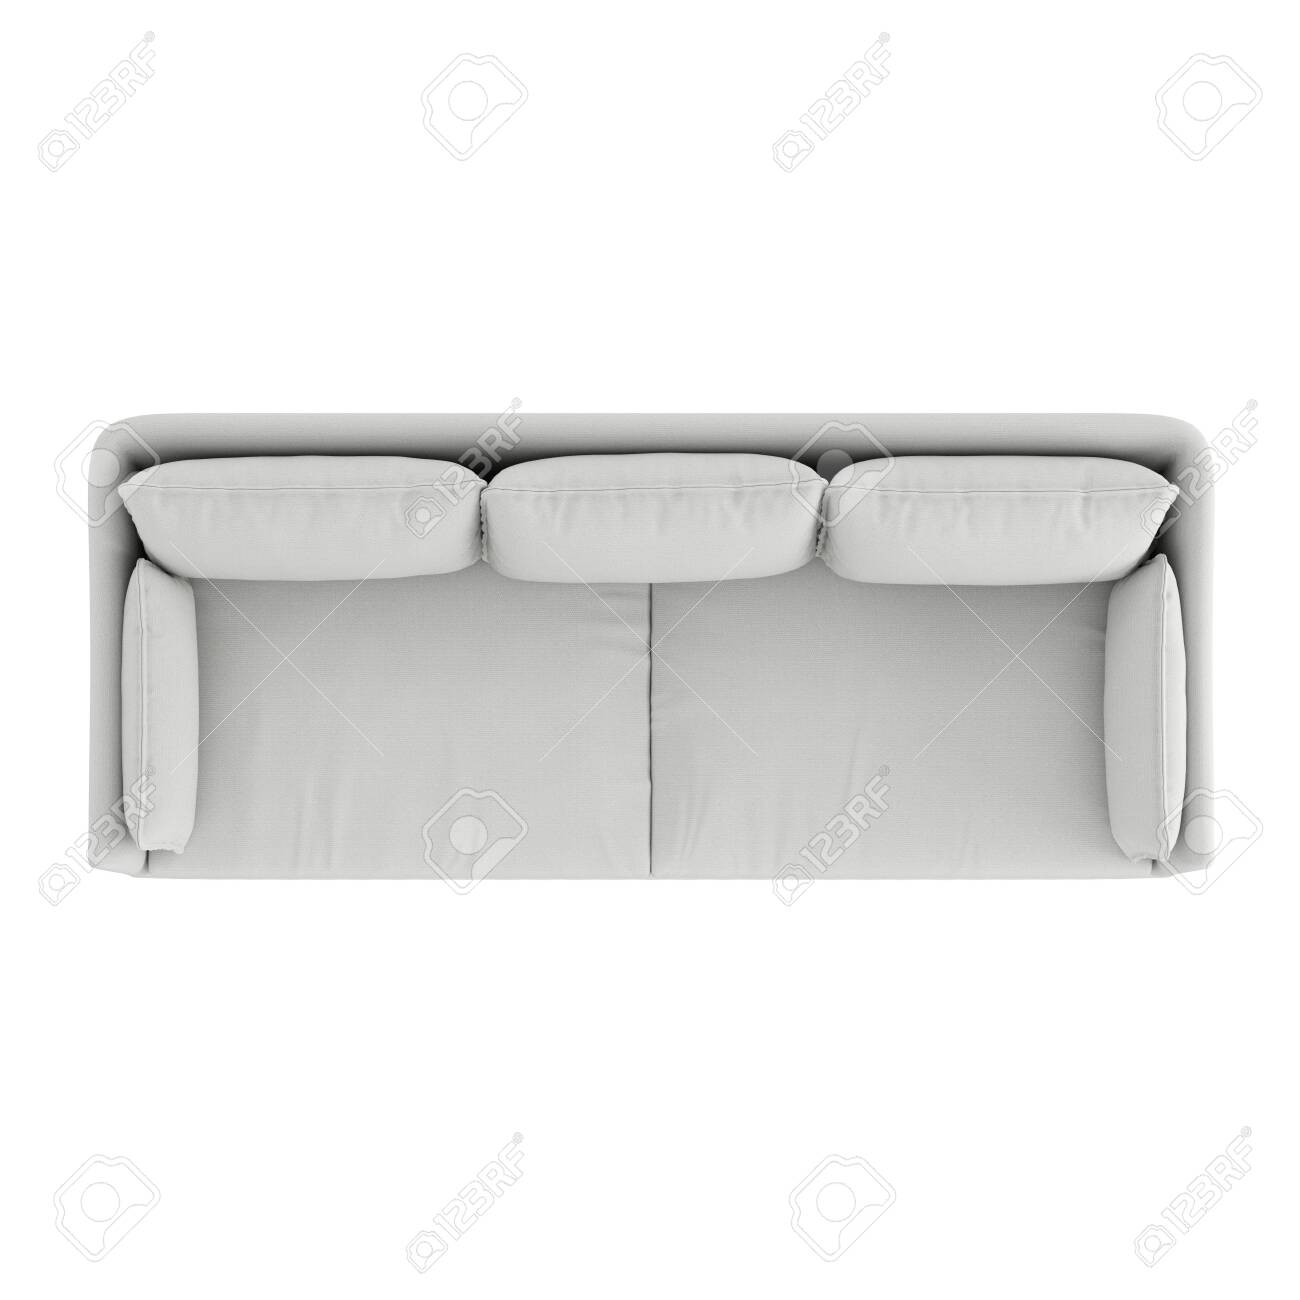 white cloth sofa top view on isolated background 3d rendering